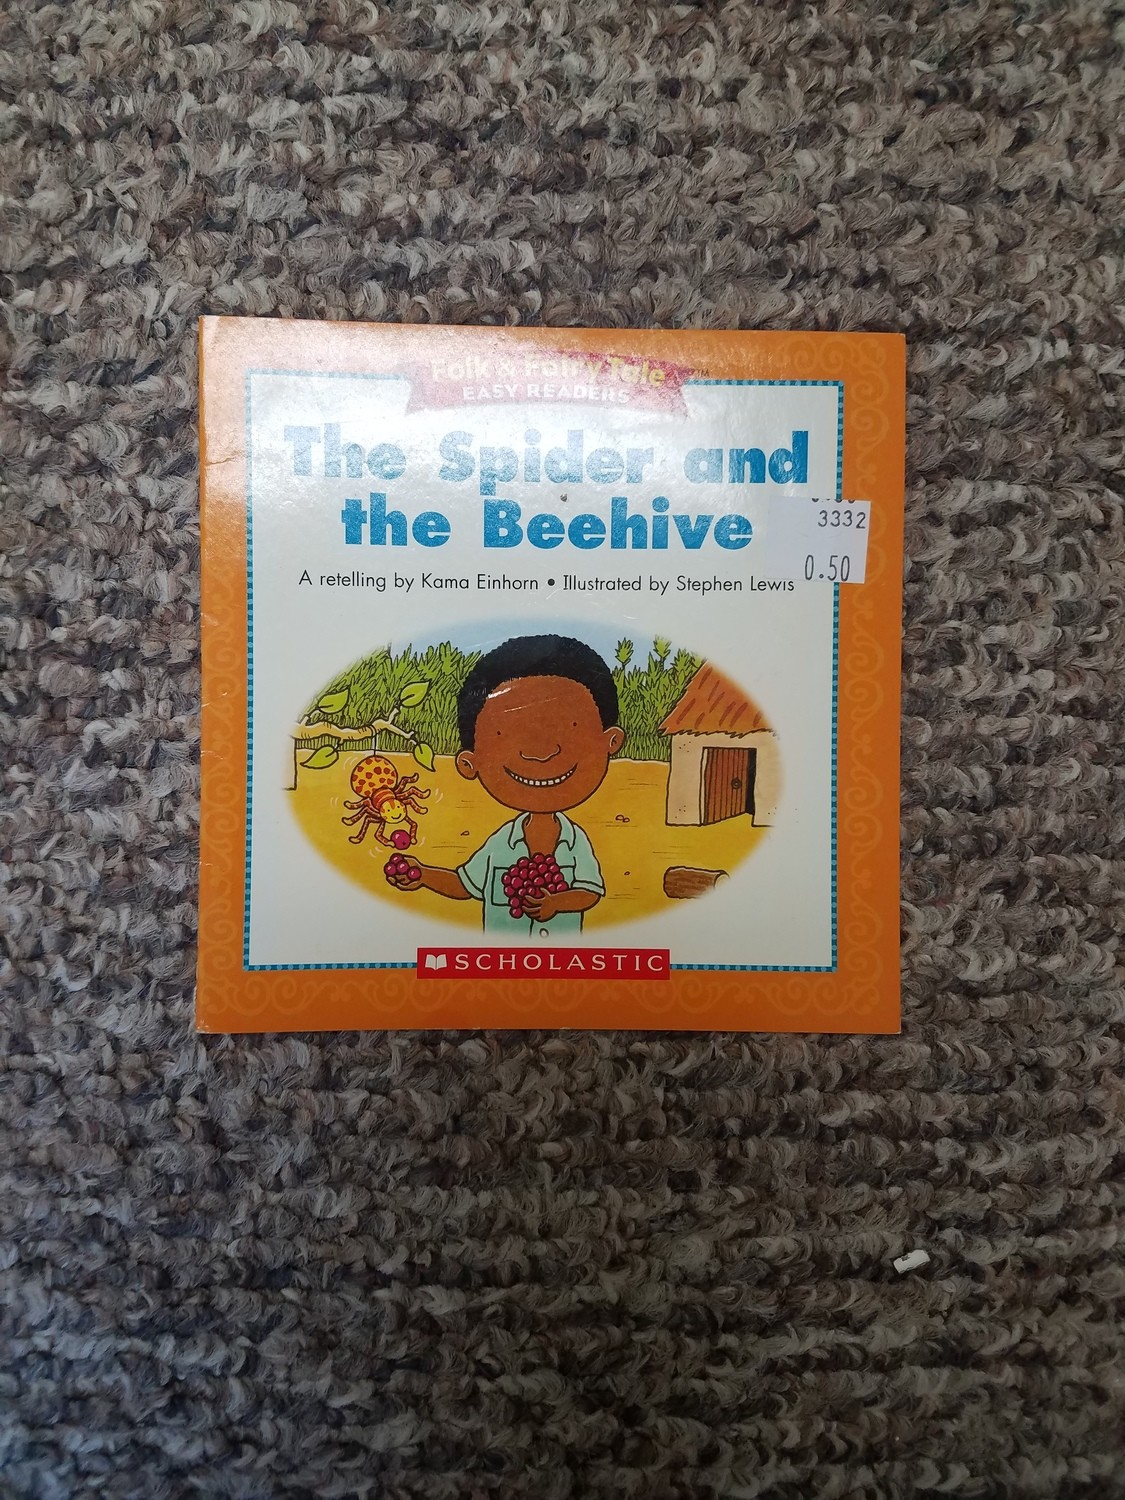 The Spider and the Beehive by Kama Einhorn